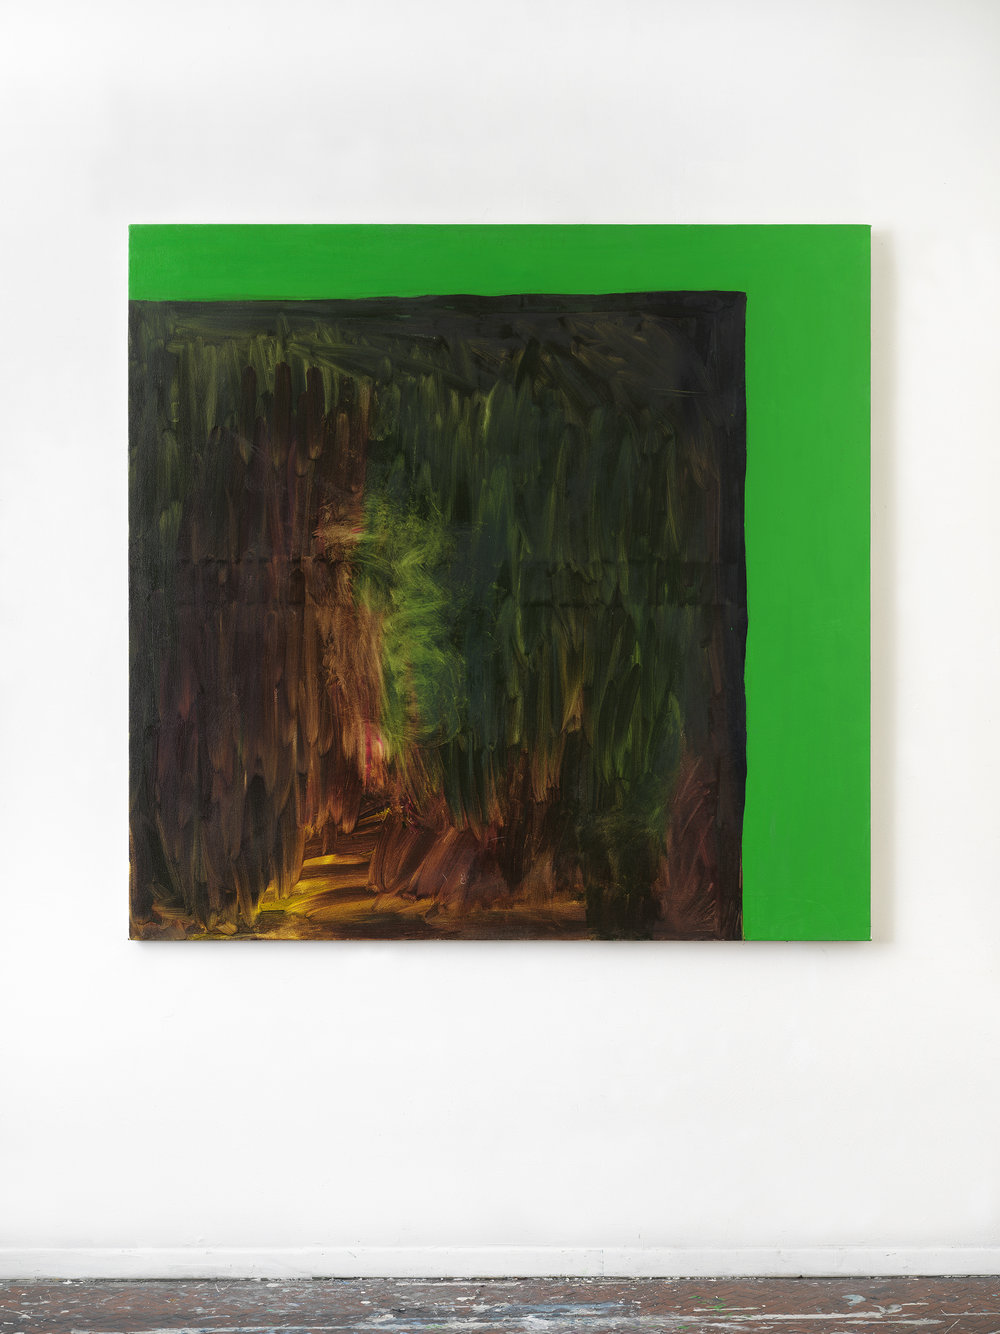 Green Screen #3 , 2018 54 x 56 inches, Oil on canvas